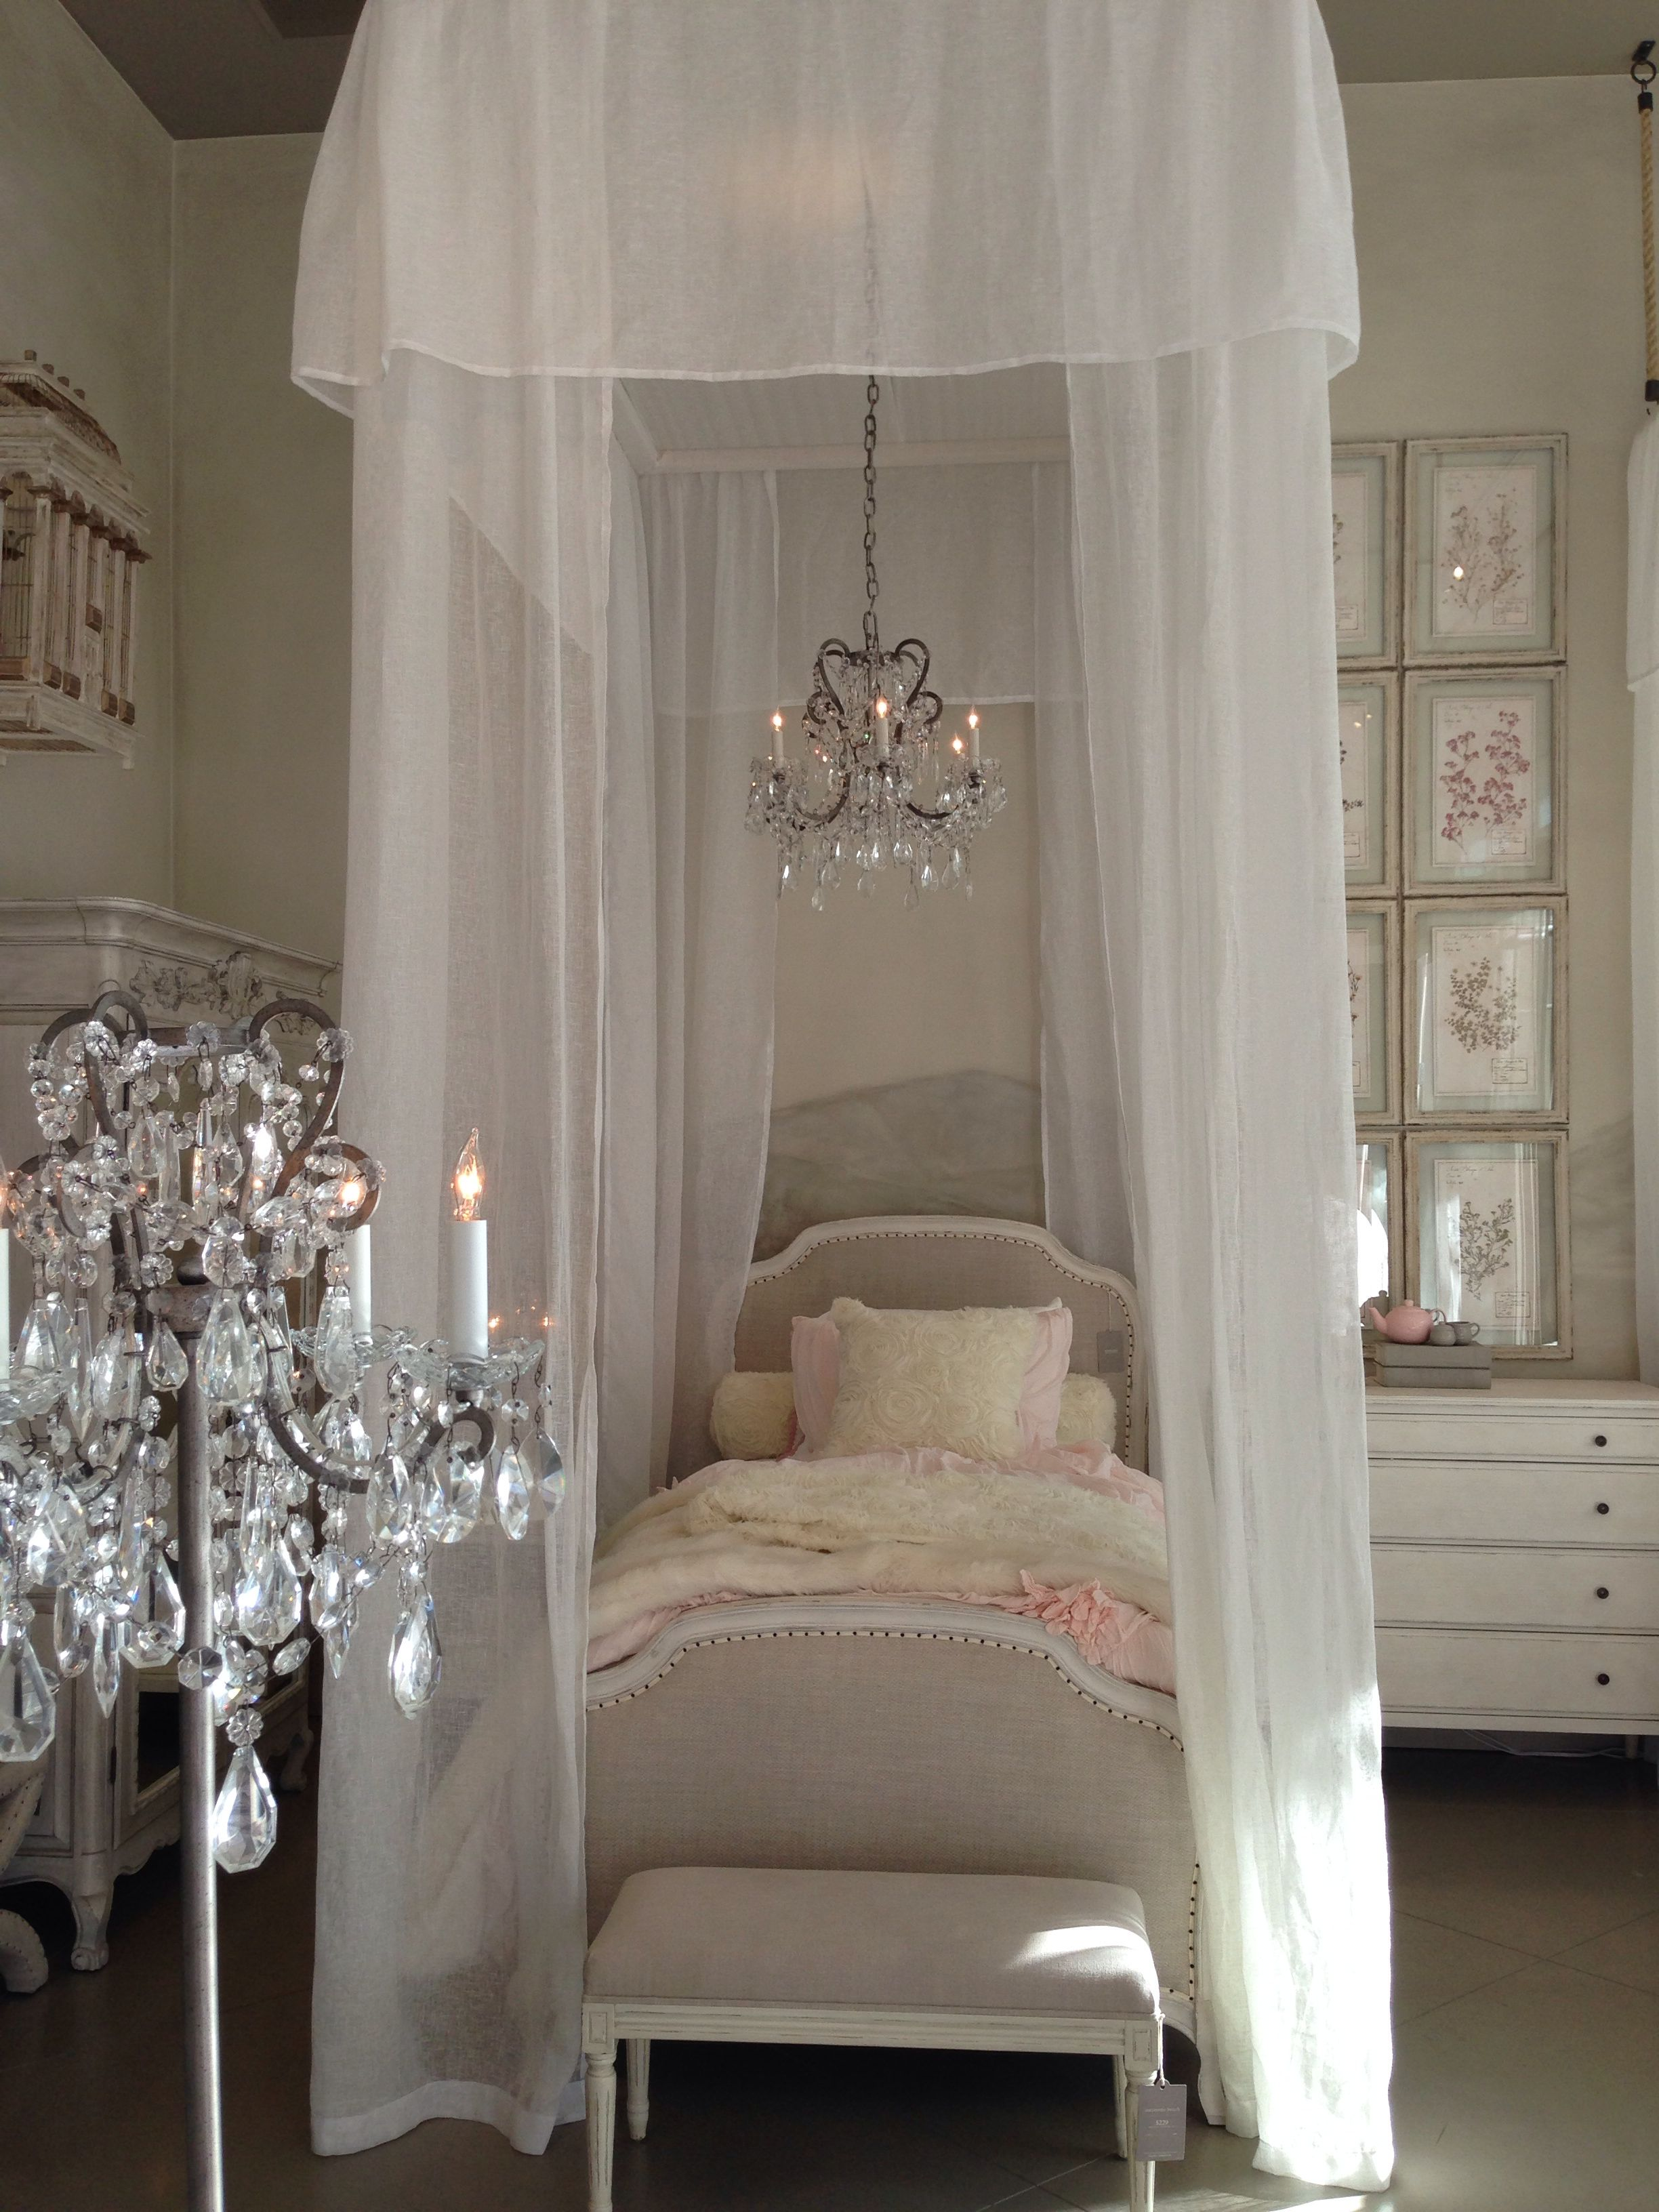 Restoration hardware baby and child girls bedroom - Restoration hardware bedroom furniture ...